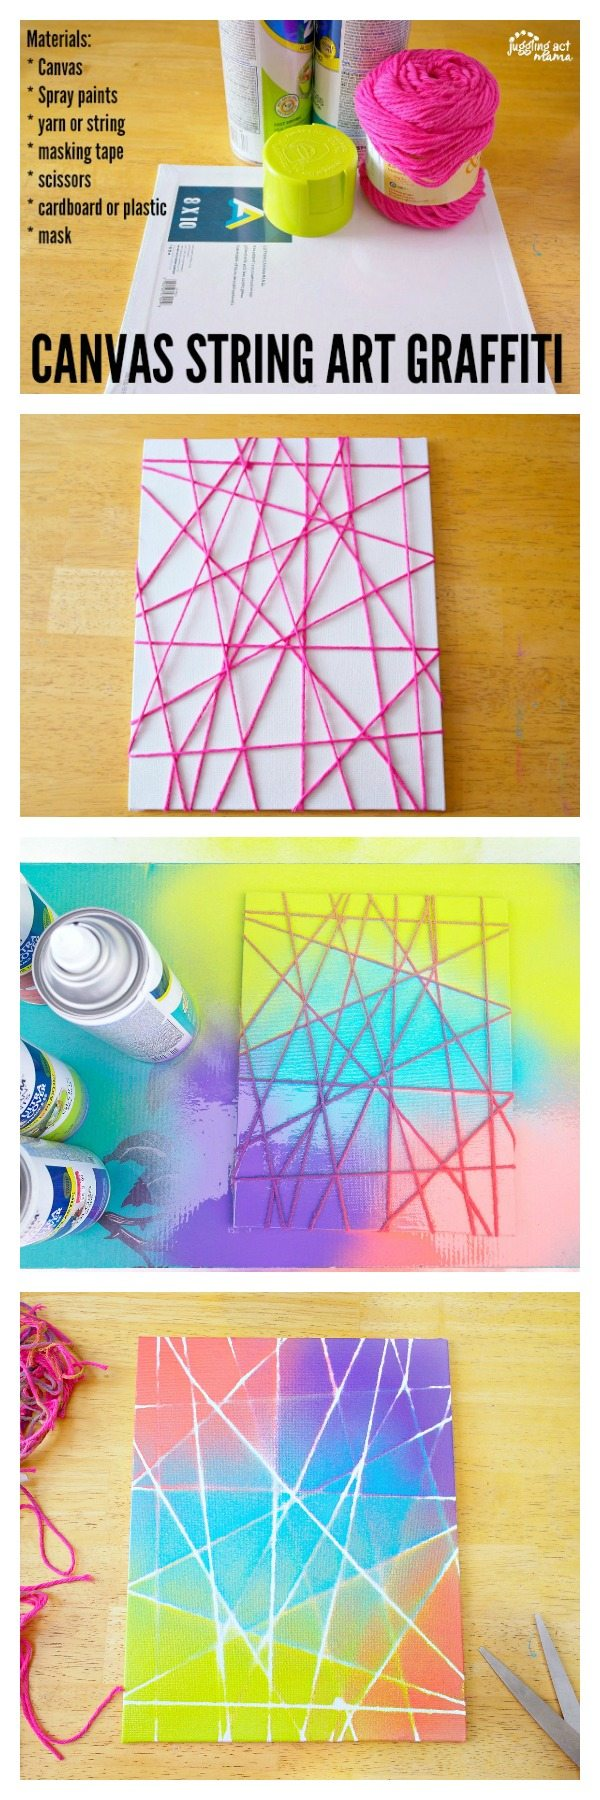 Canvas Spray Paint Ideas Part - 21: This Canvas String Art Graffiti Project Is Fun For Kids And Adults Alike.